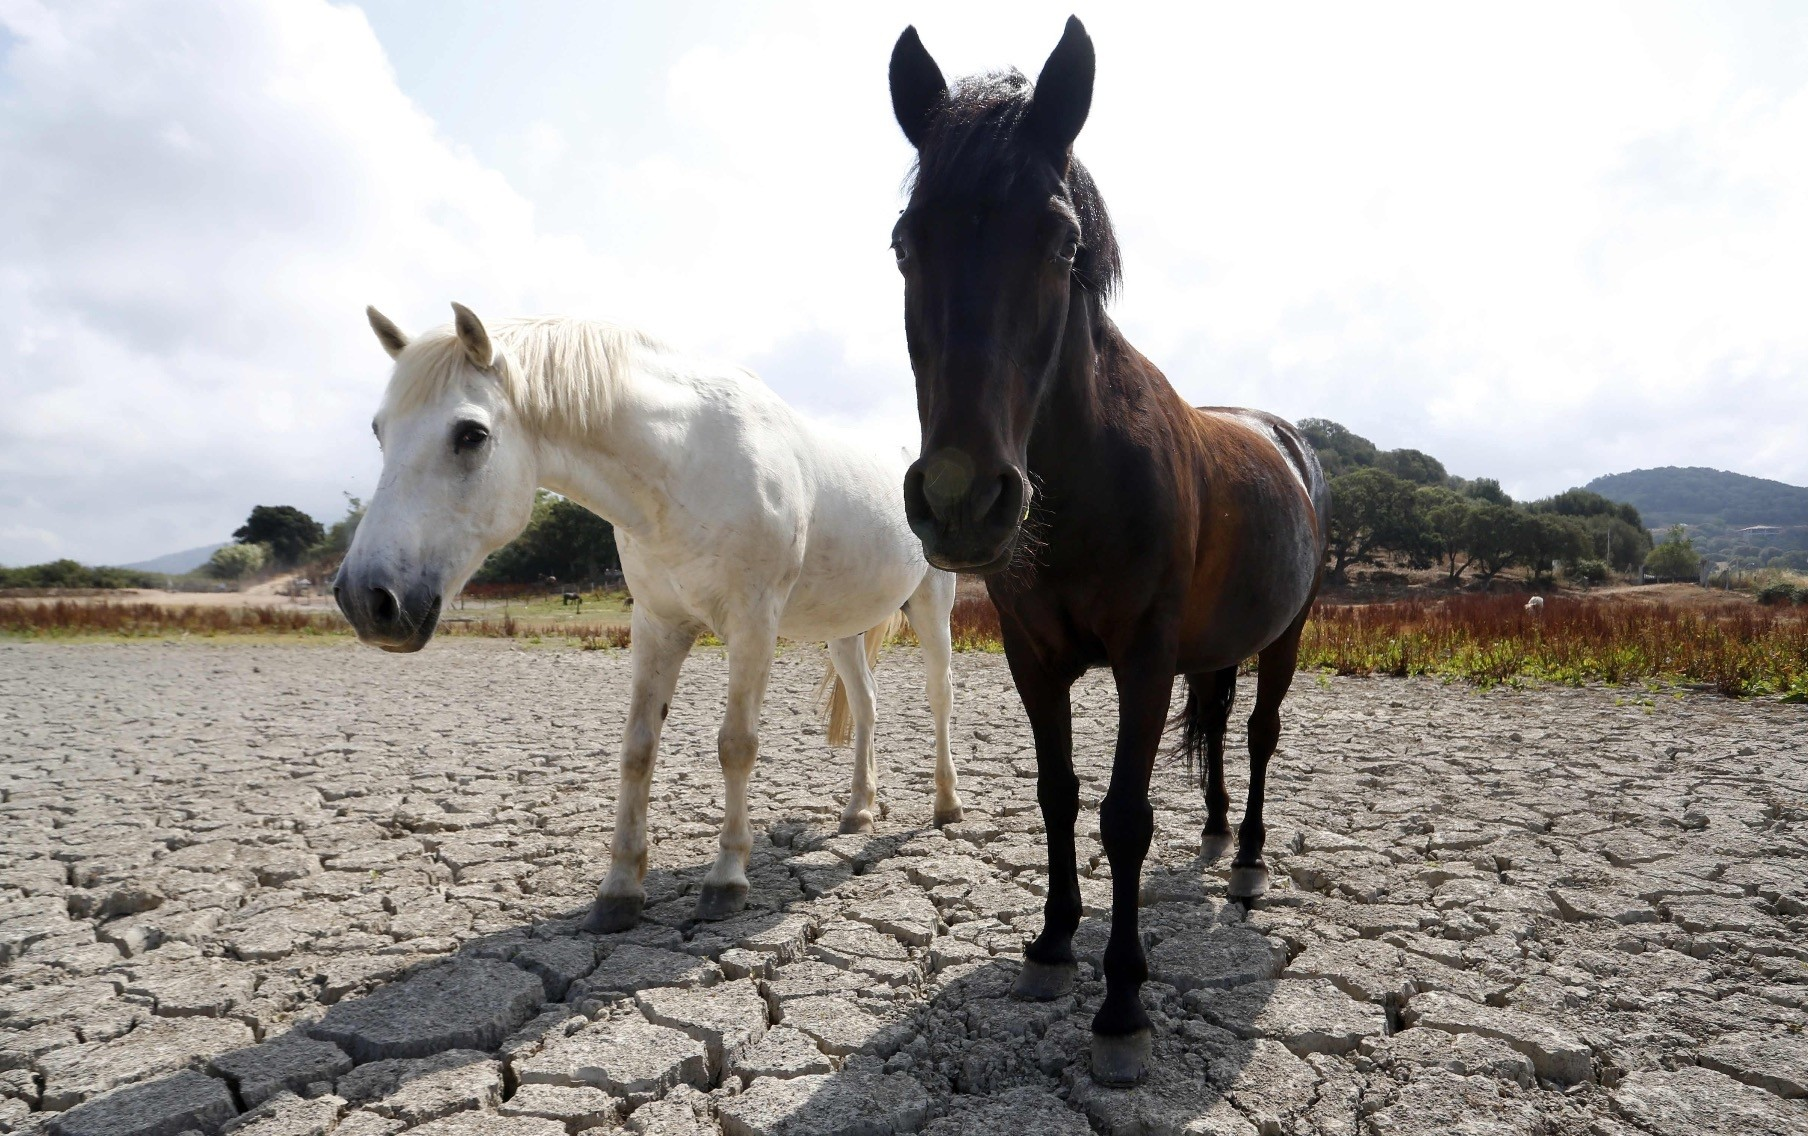 Horses stand on a dry field in Bastelicaccia, a few kilometers from Ajaccio, on the French Mediterranean island of Corsica.The drought during the summer of 2018 has taken a toll among the northern European countries, which produce milk.